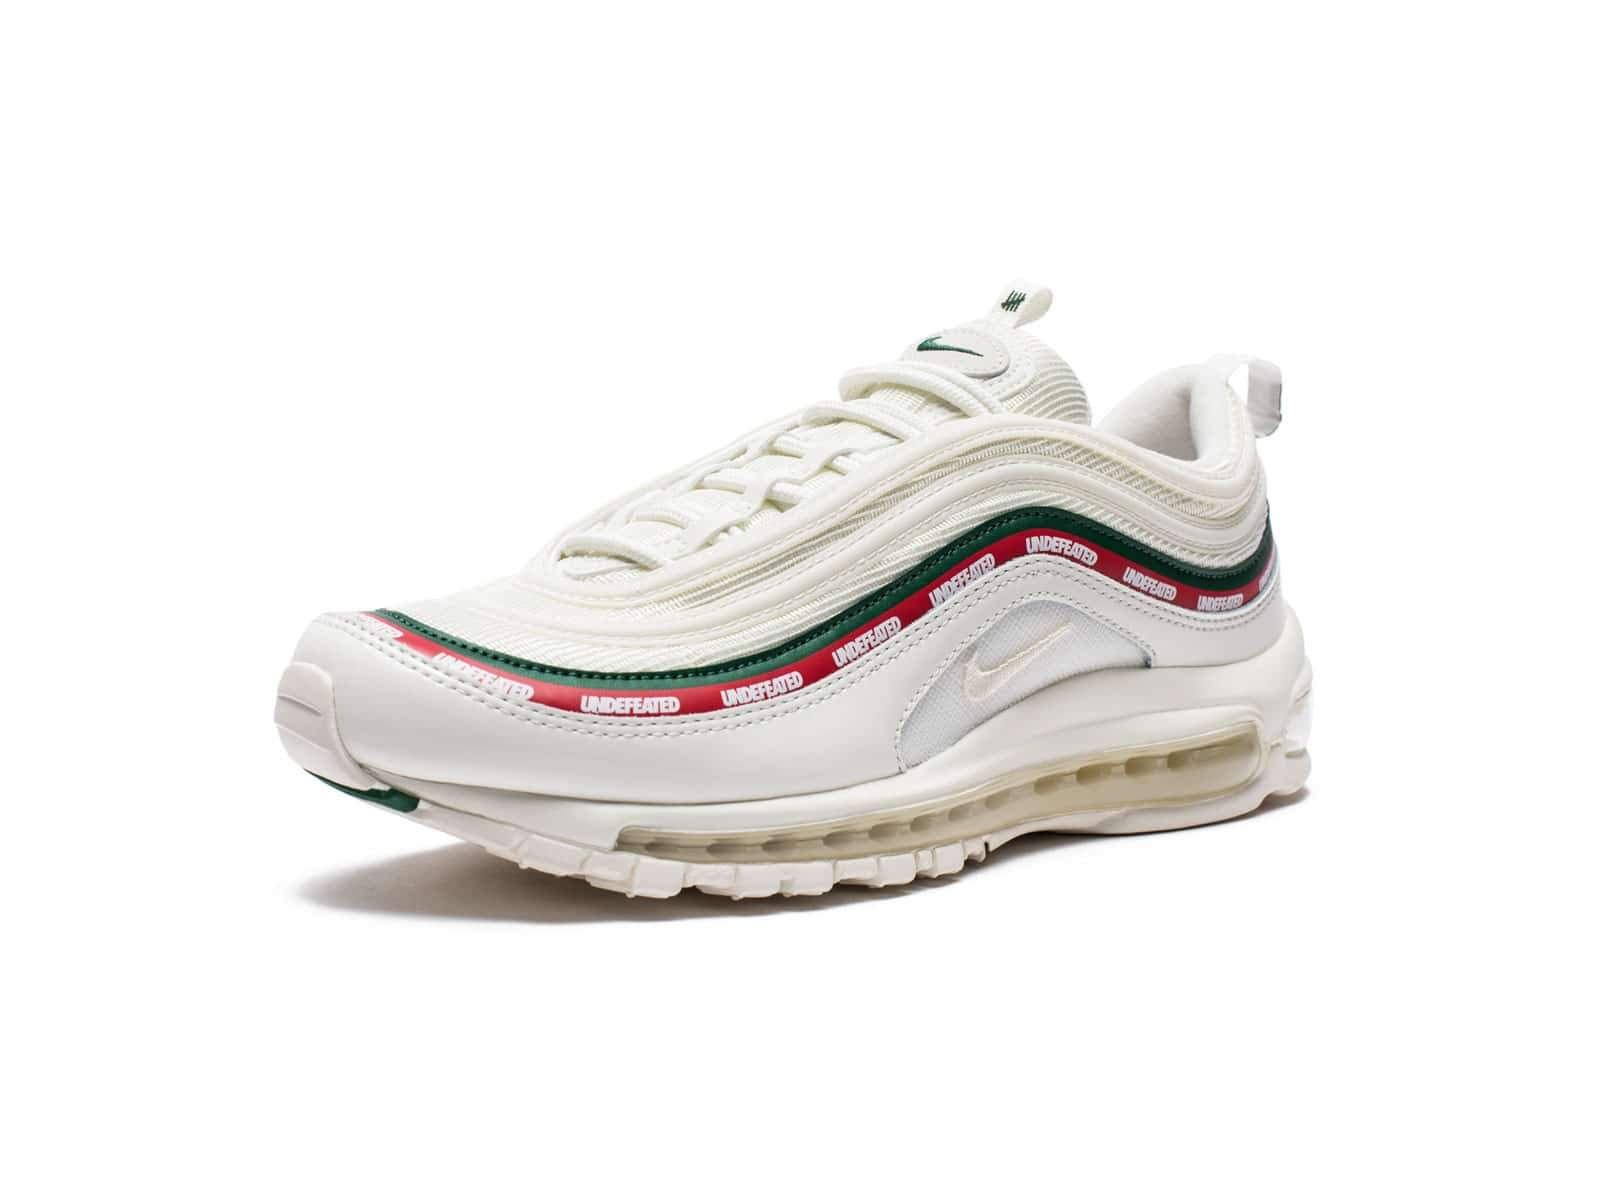 1465d882e9 UNDEFEATED X NIKE AIR MAX 97 OG – SAIL/SPEED RED/WHITE/GORGE ...